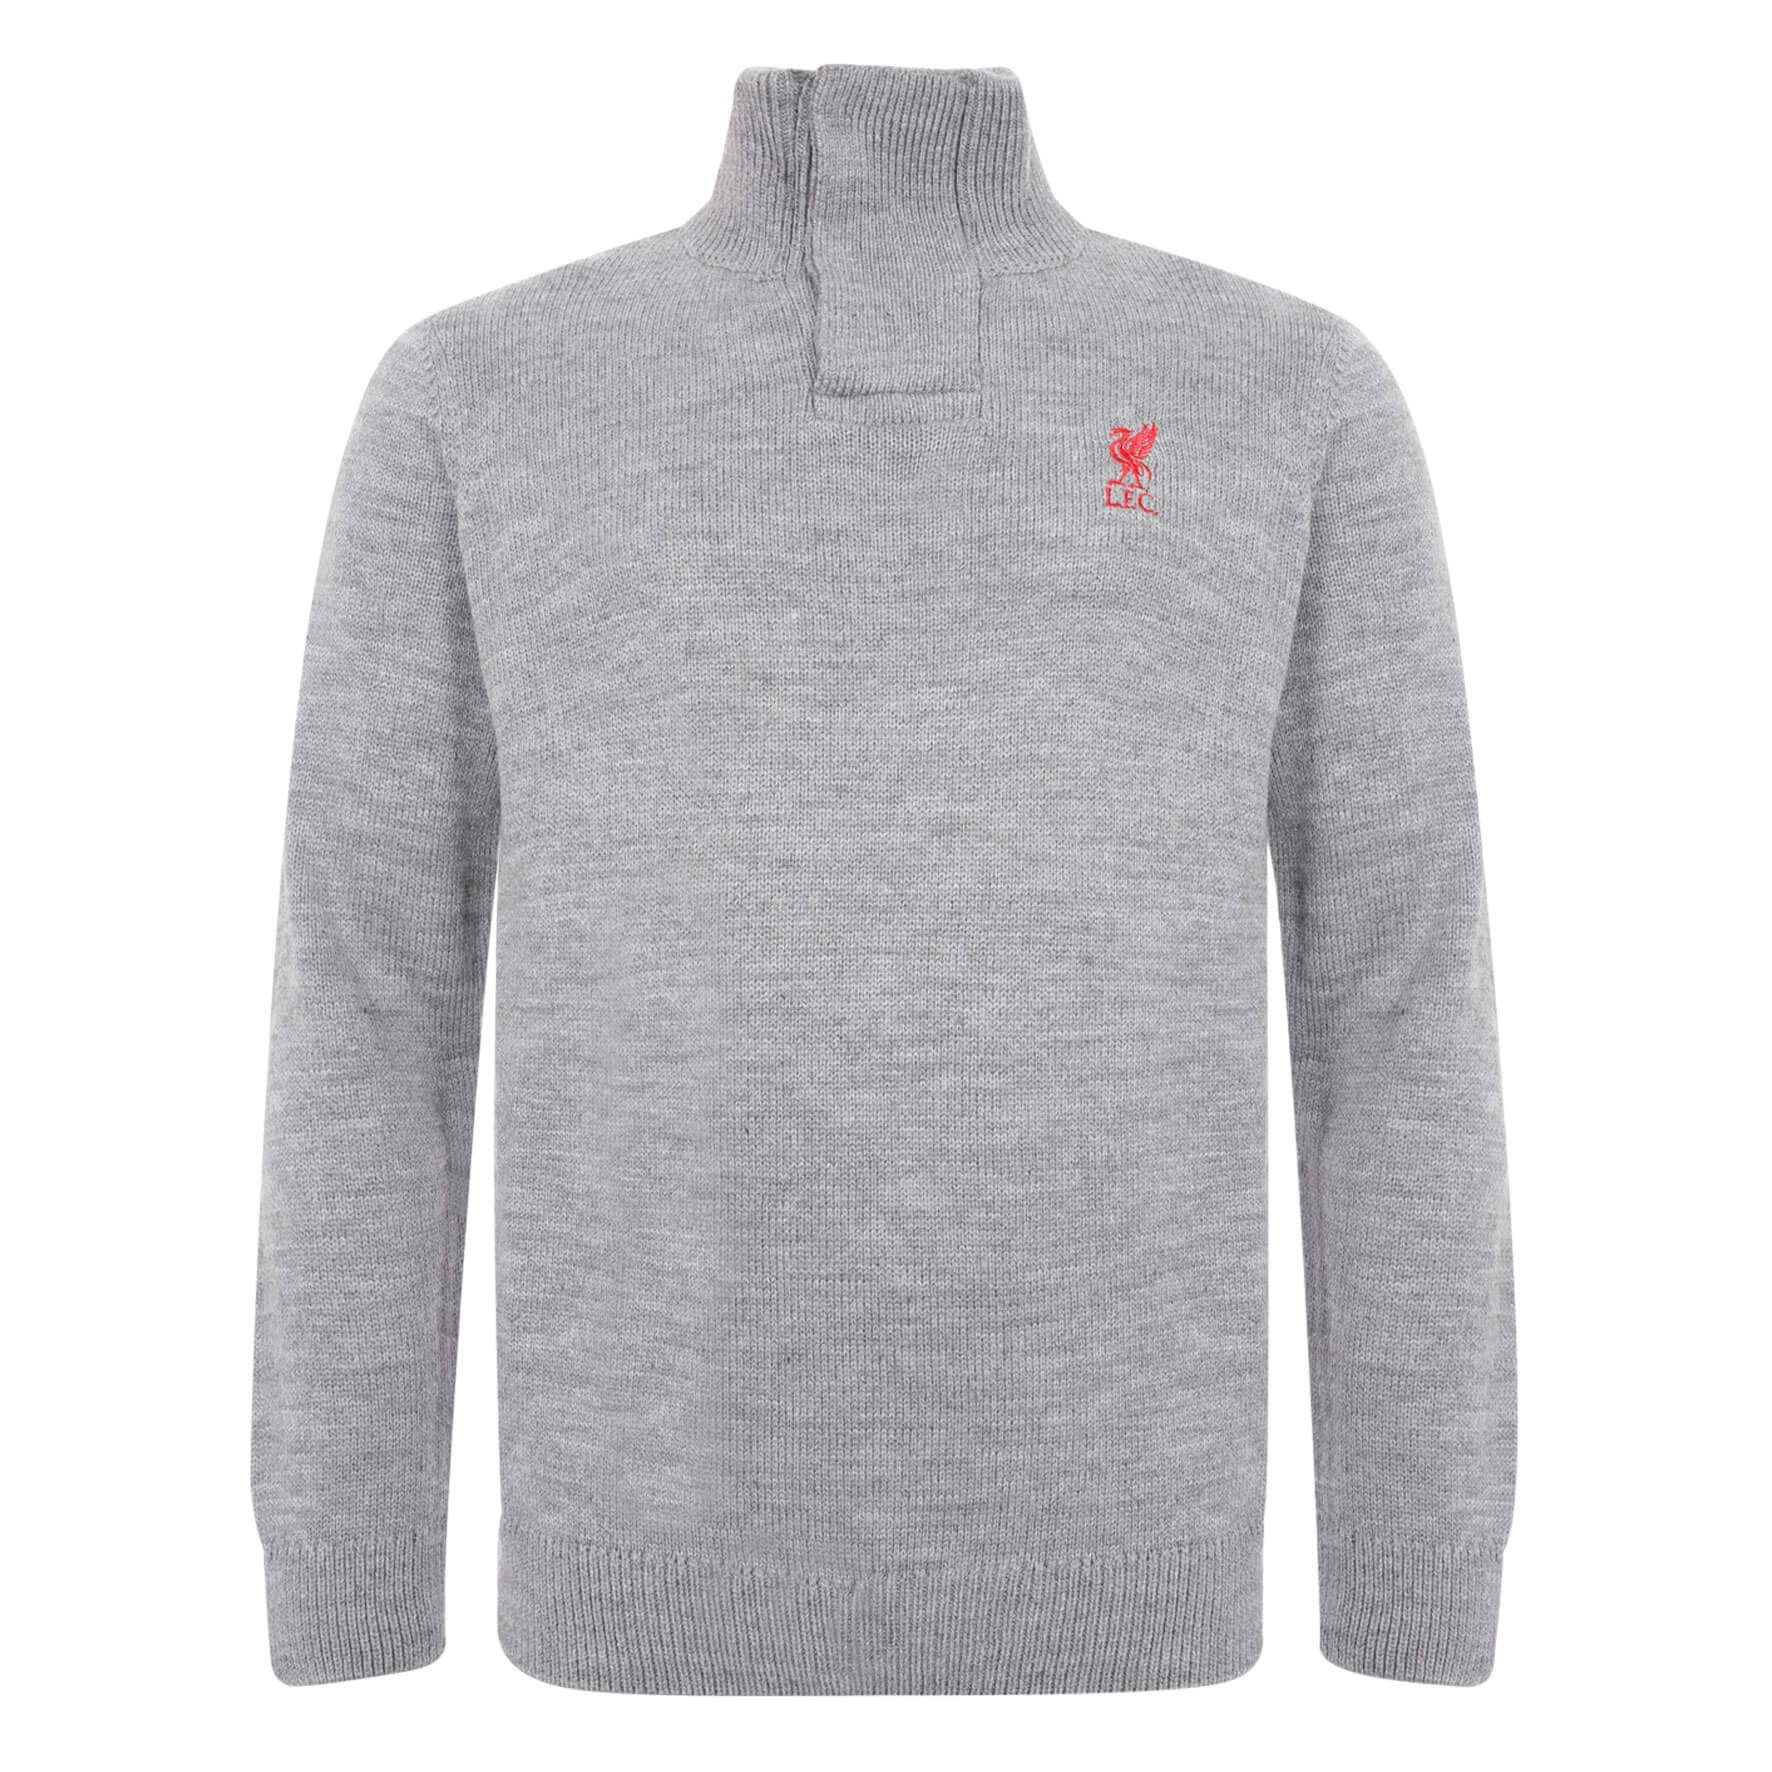 LFC Mens Grey Acrylic Funnel Neck Knit